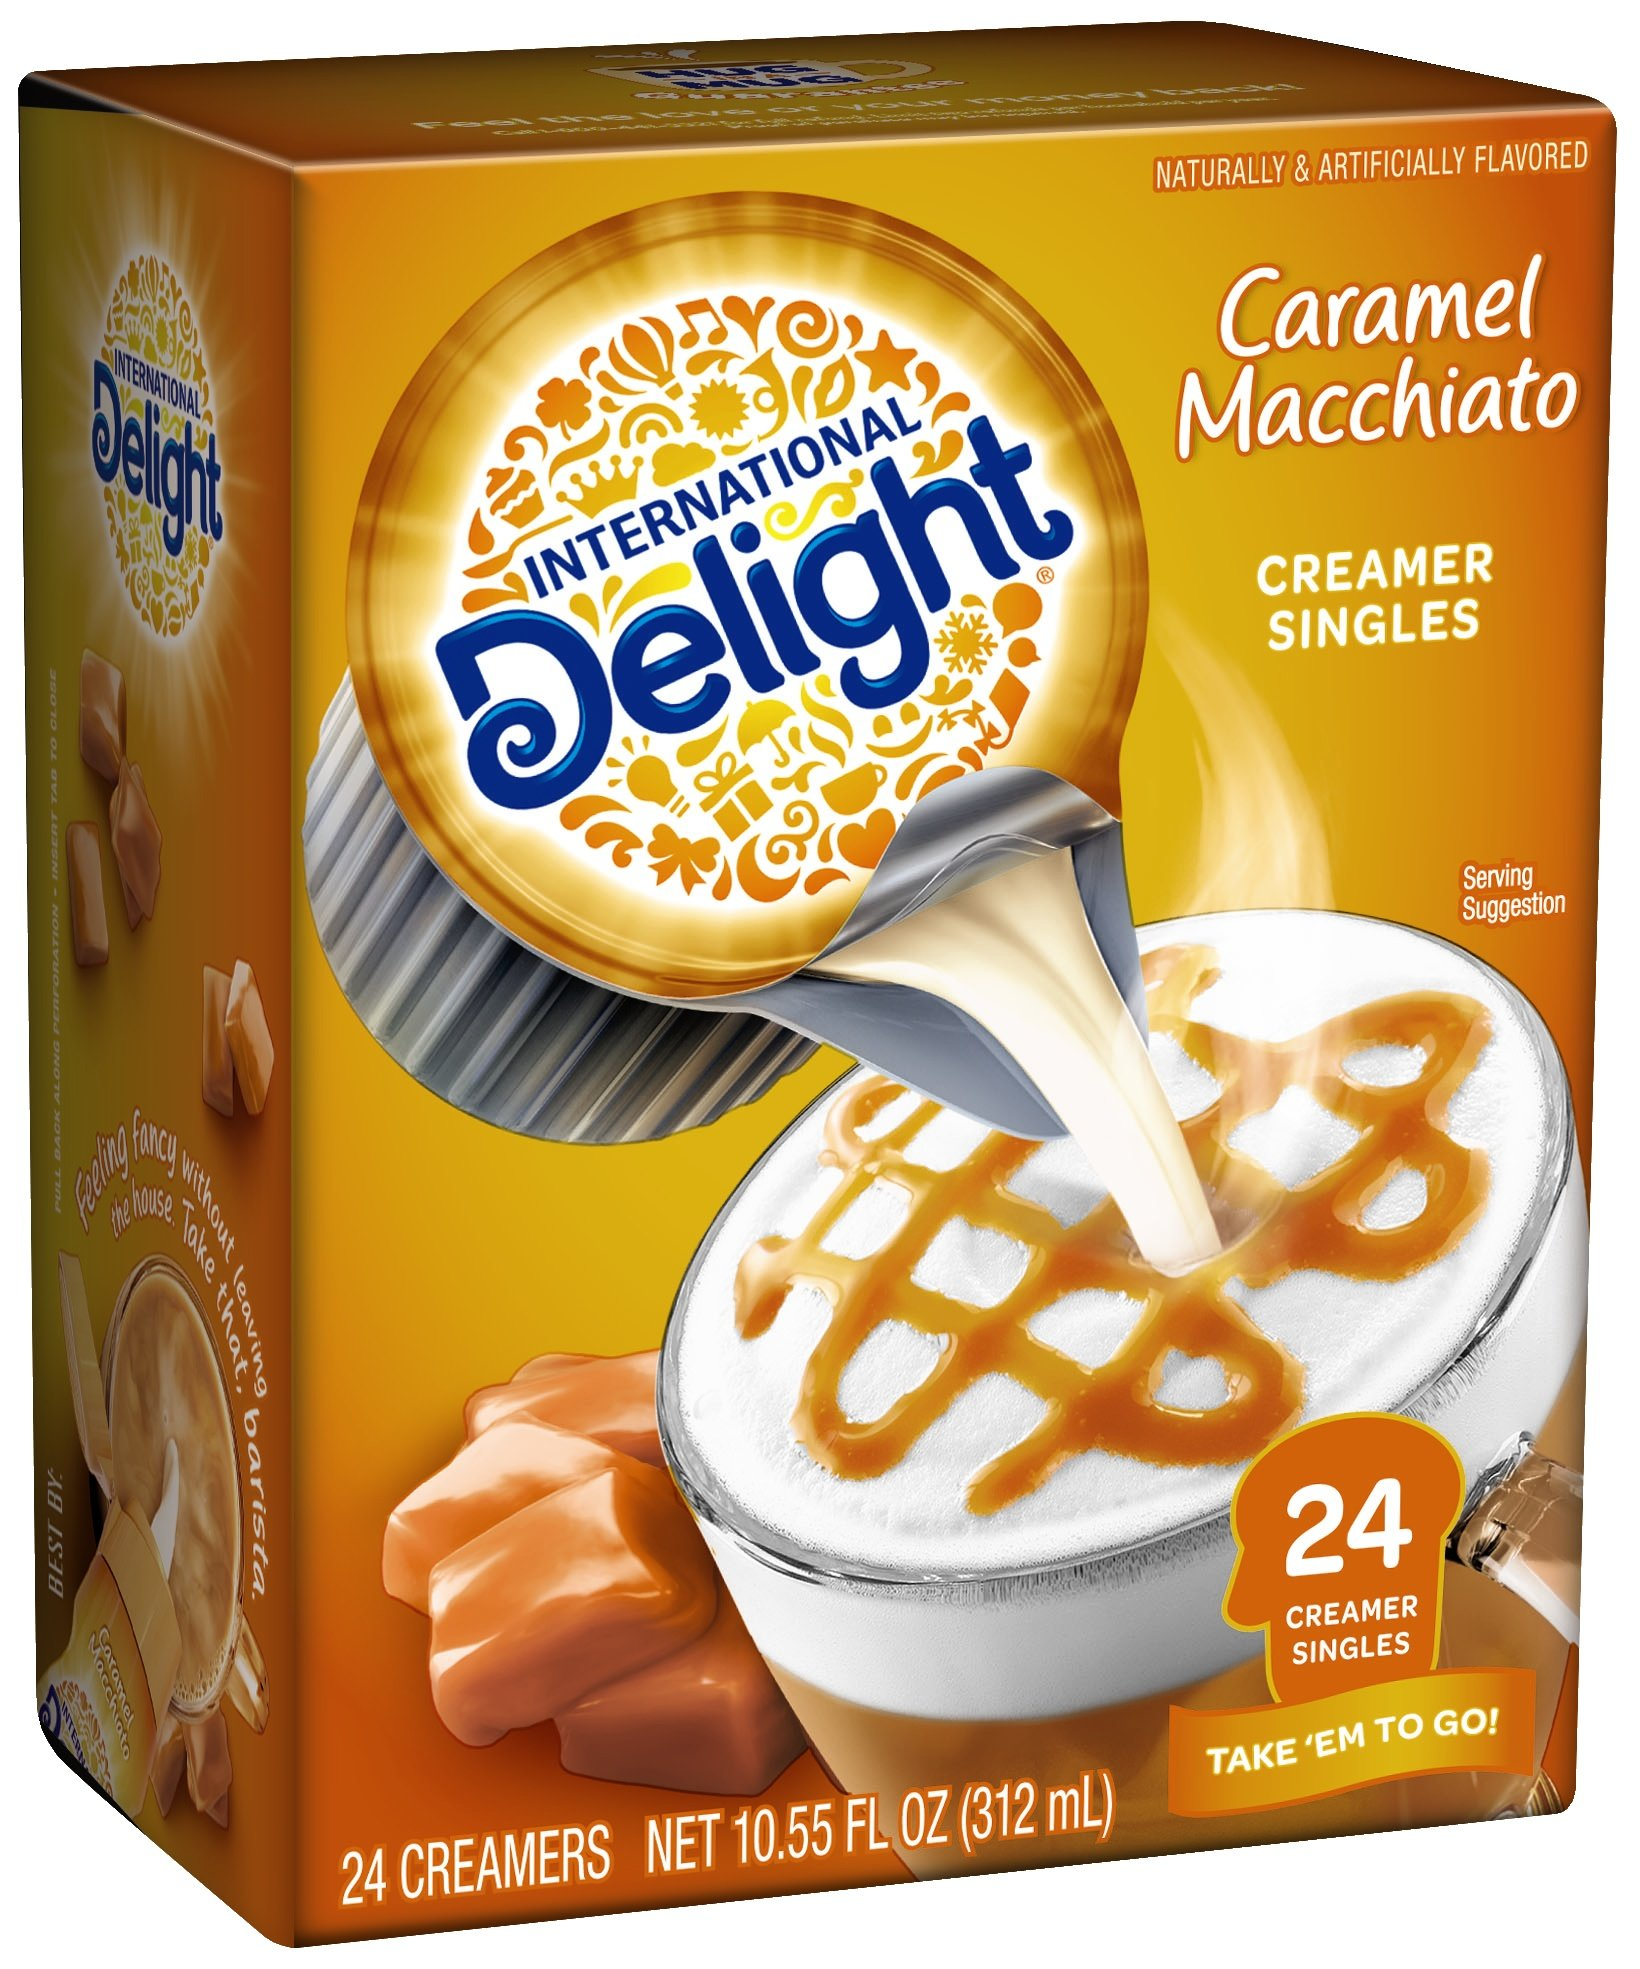 International Delight, Caramel Macchiato, Single-Serve Coffee Creamers, 24 Count (Pack of 6), Shelf Stable Non-Dairy Flavored Coffee Creamer, Great for Home Use, Offices, Parties or Group Events by International Delight